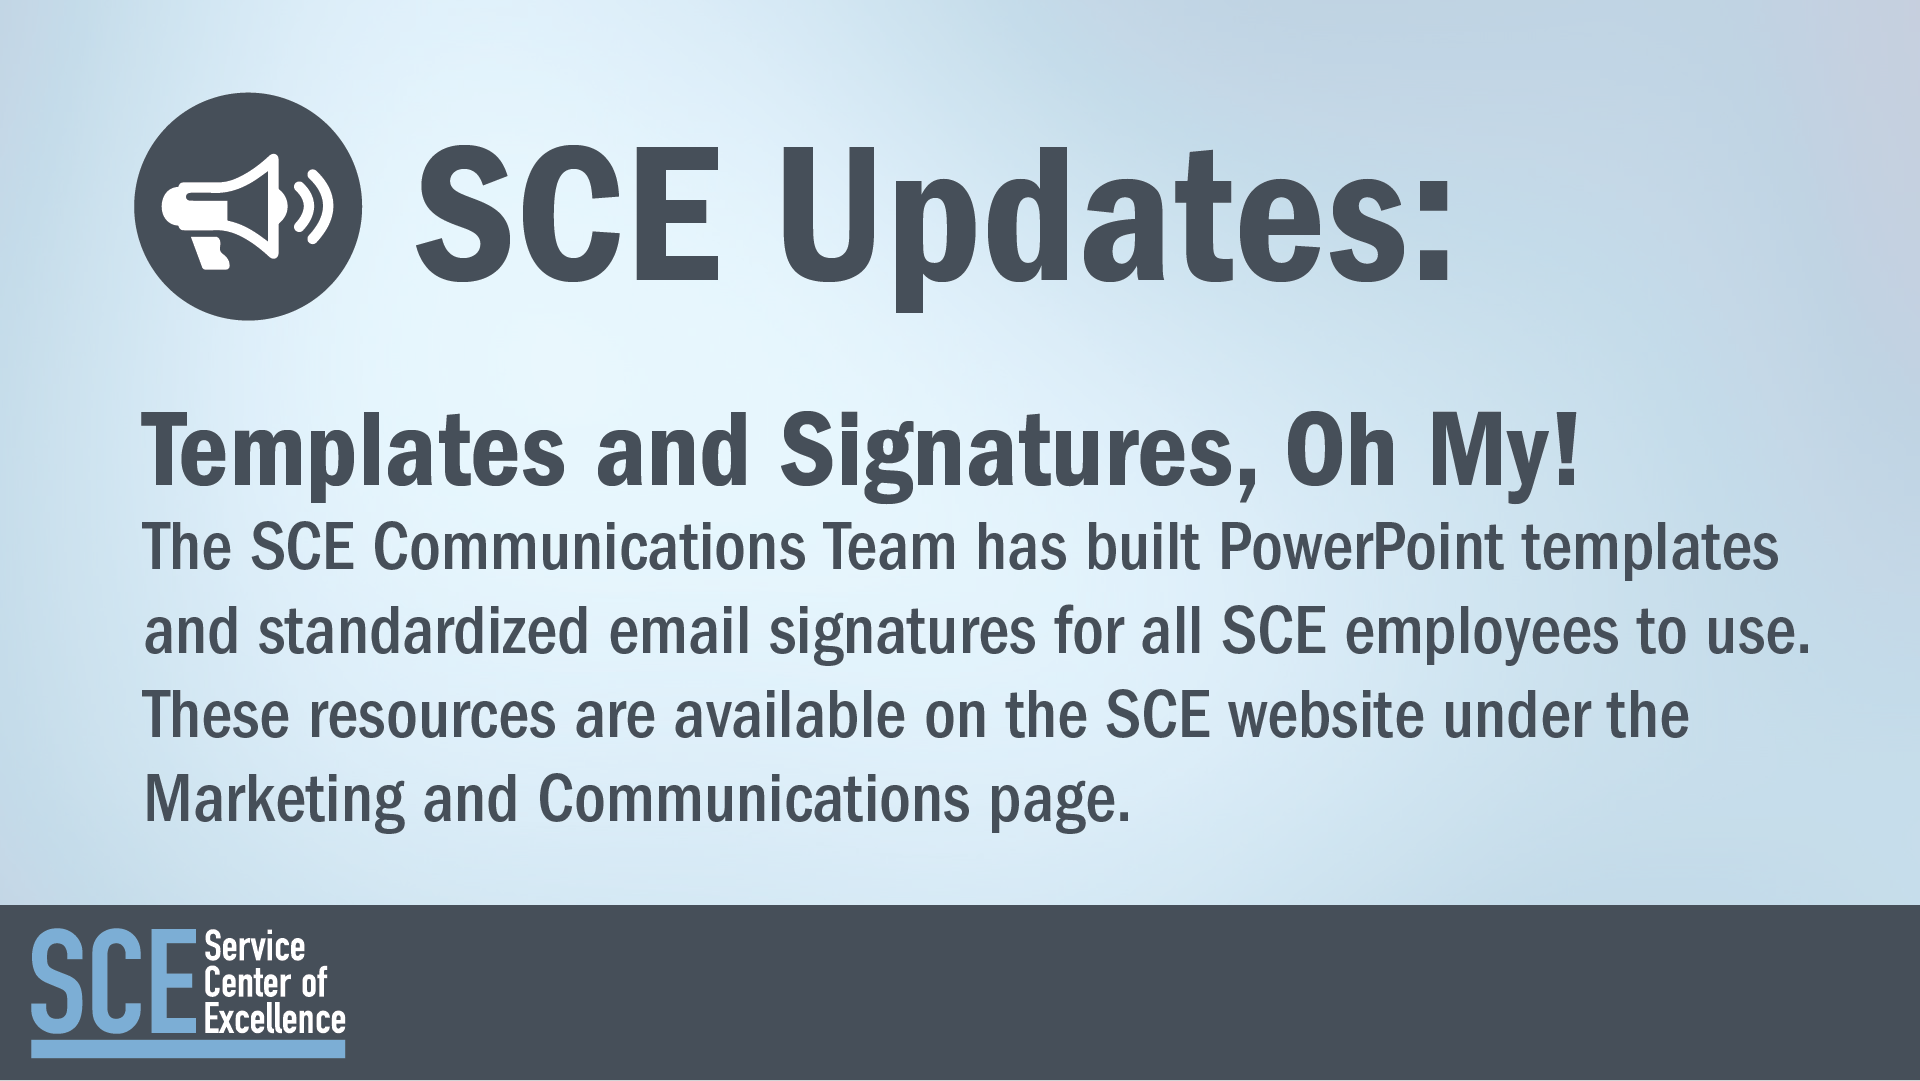 SCE Updates - Templates & Signatures